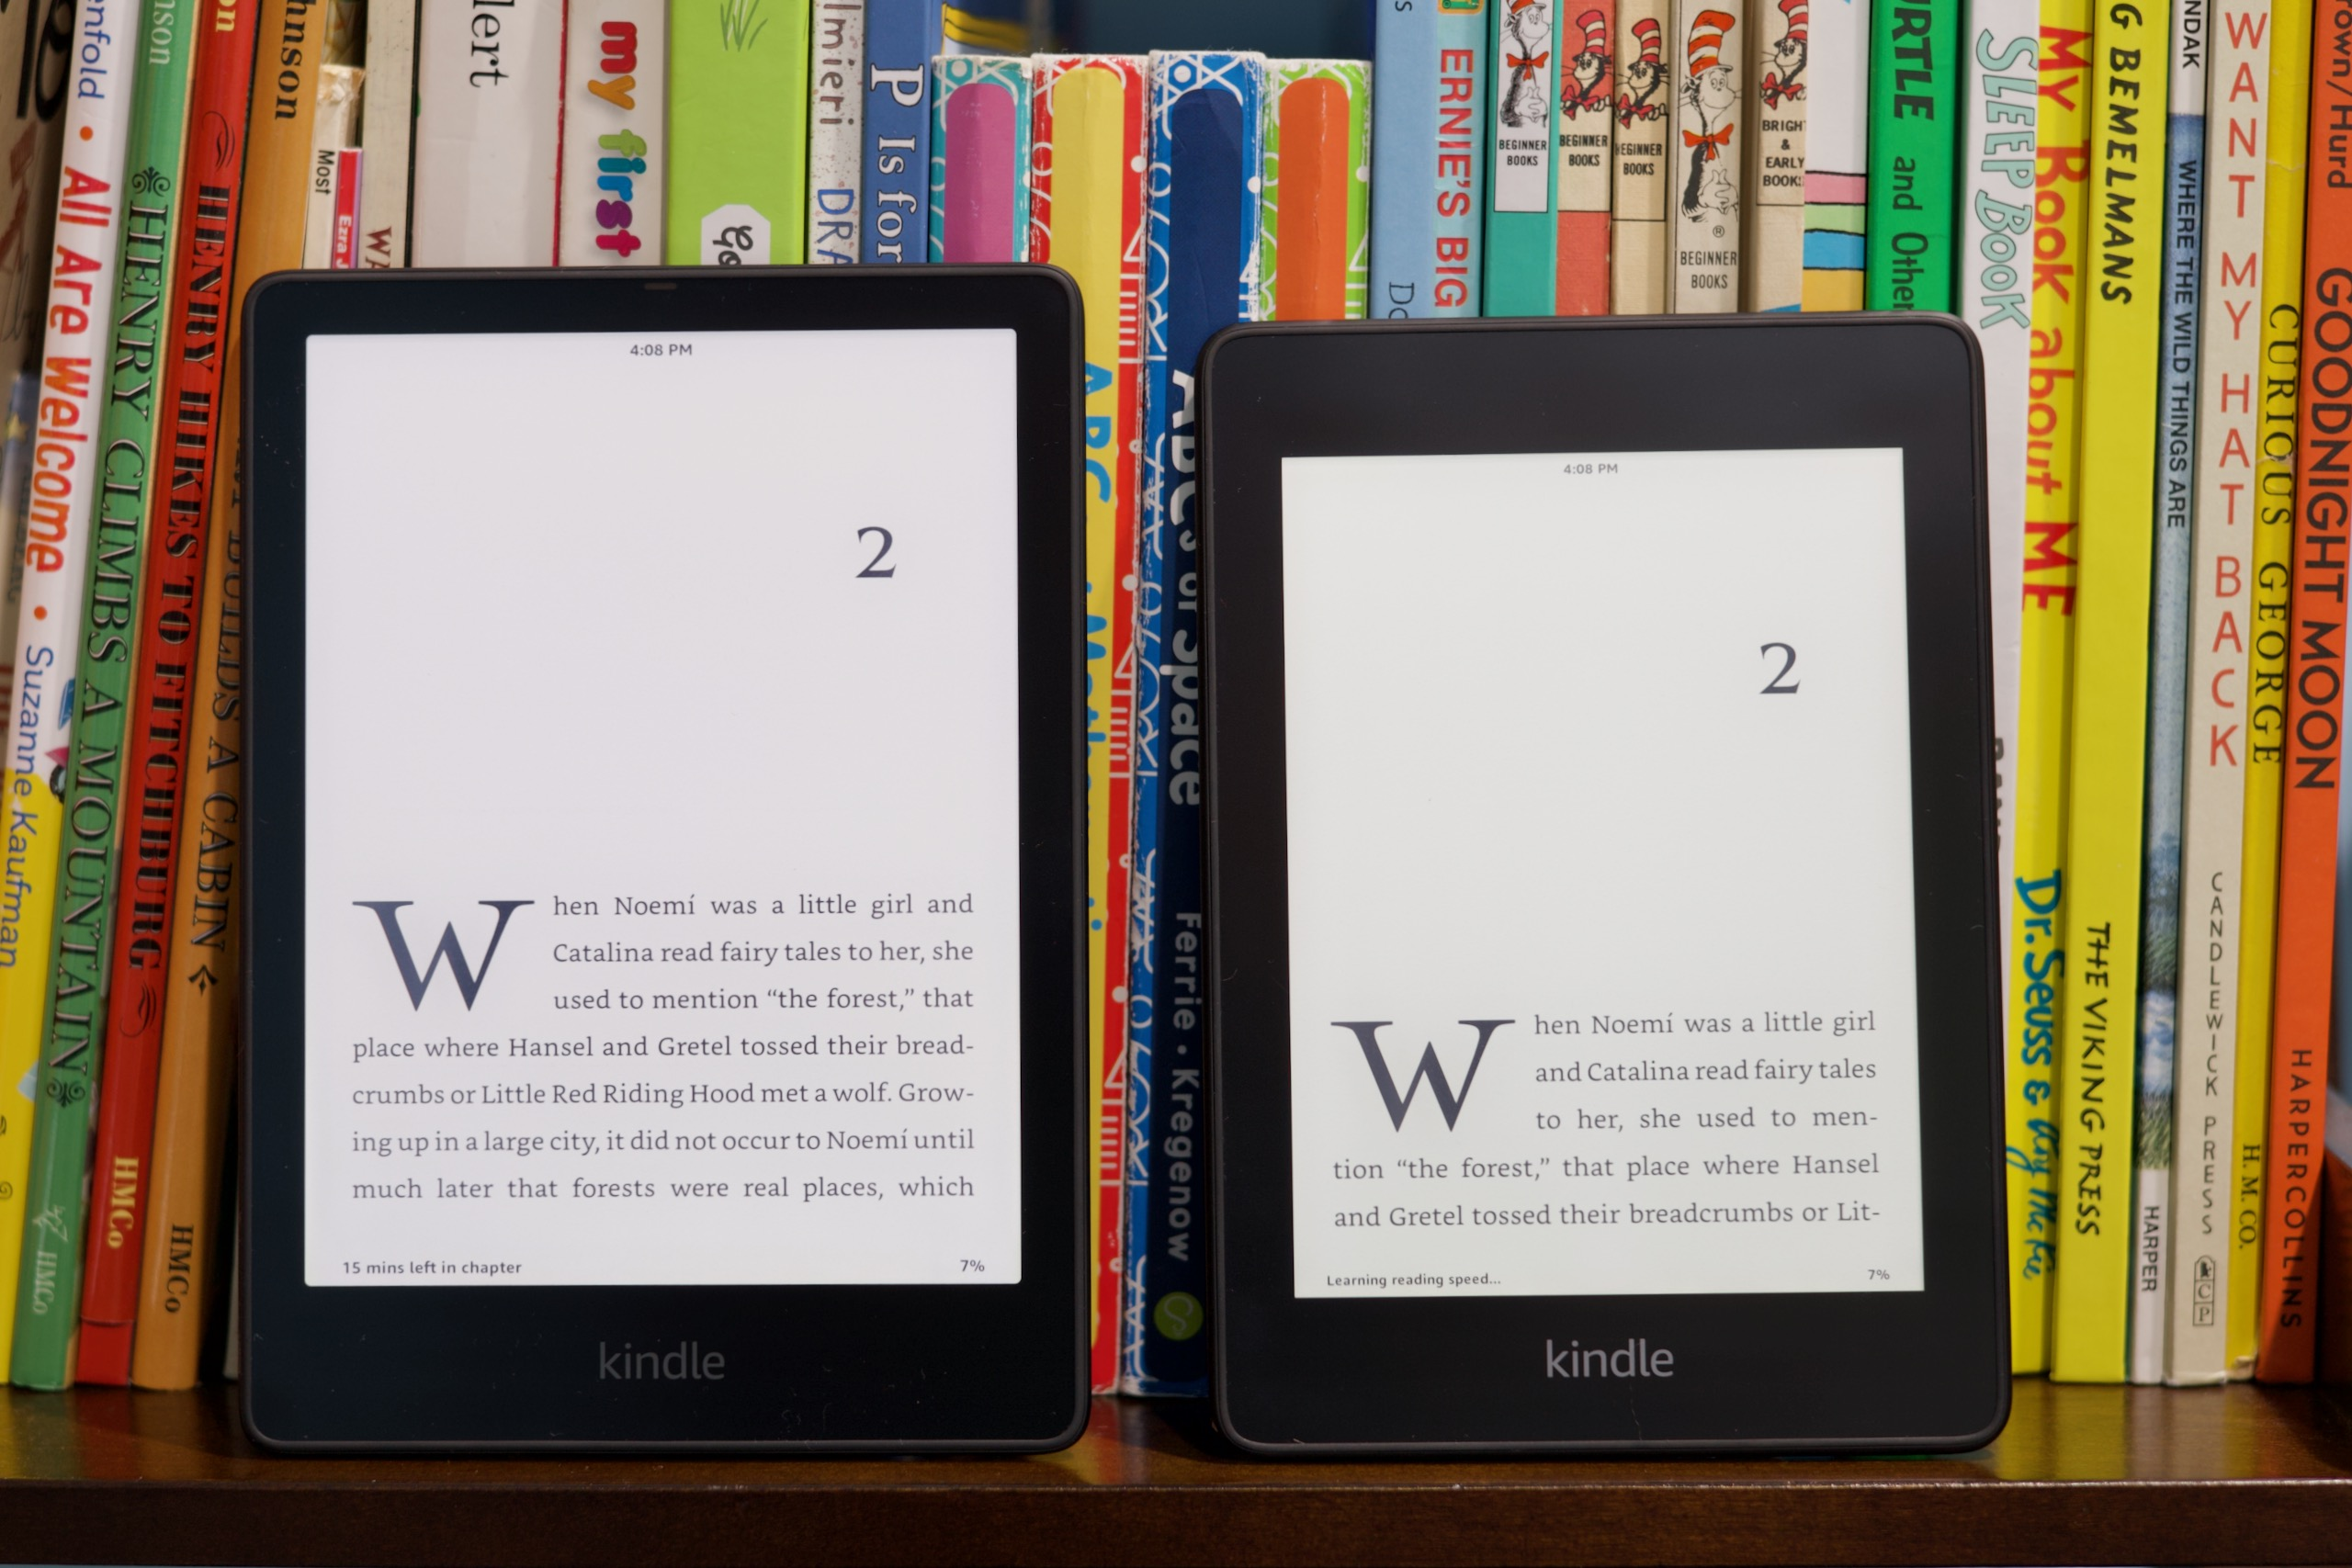 The new Paperwhite (left) has a 6.8-inch screen, which looks and feels much larger than the old model's 6-inch display (right).